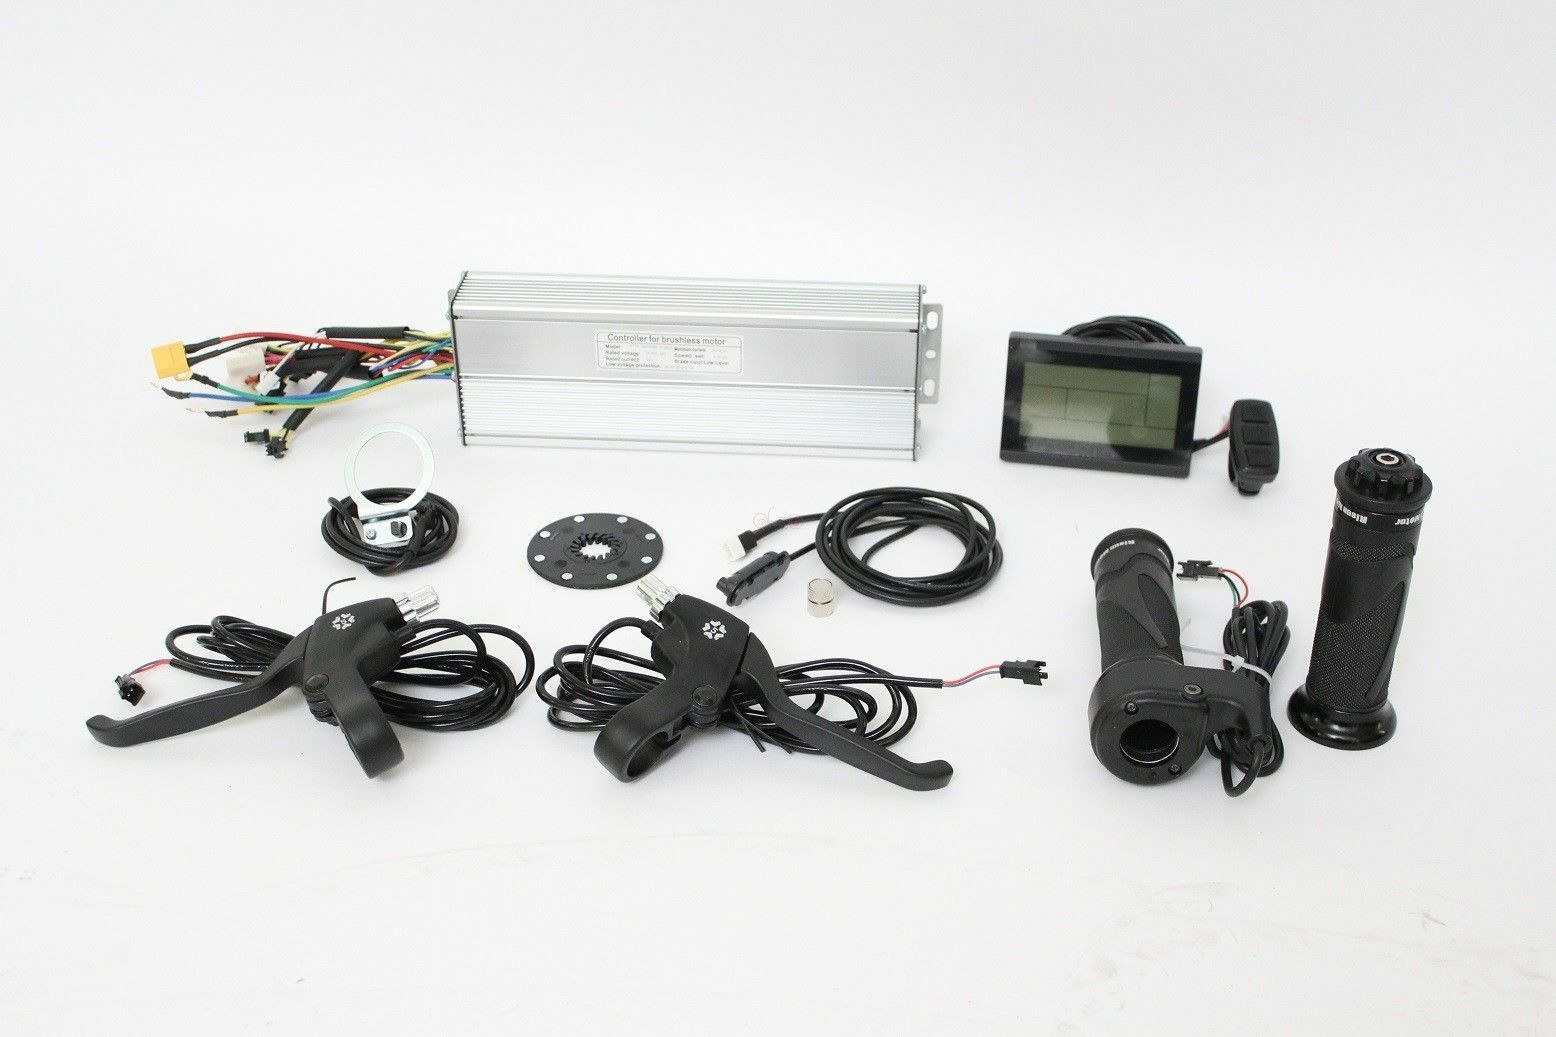 36 48V 200-350W 20A Square Wave Controller+LCD3+Thredtle+PAS+Brakes+Speed Sensor